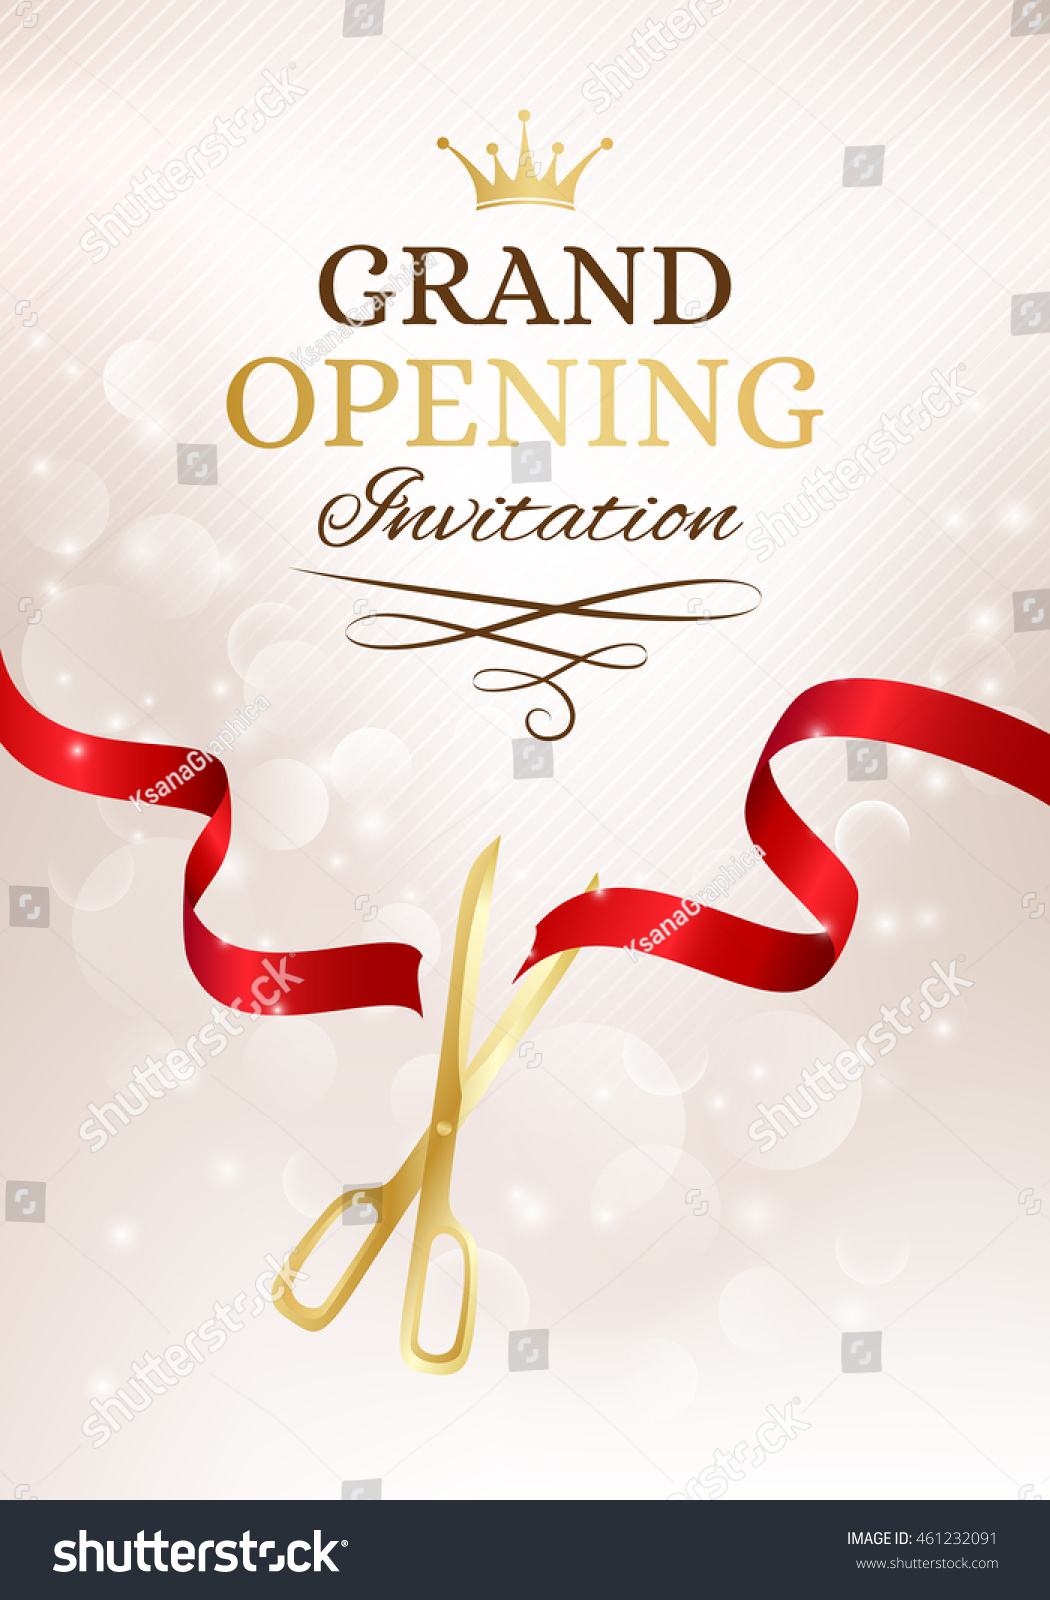 grand opening invitation card with cut